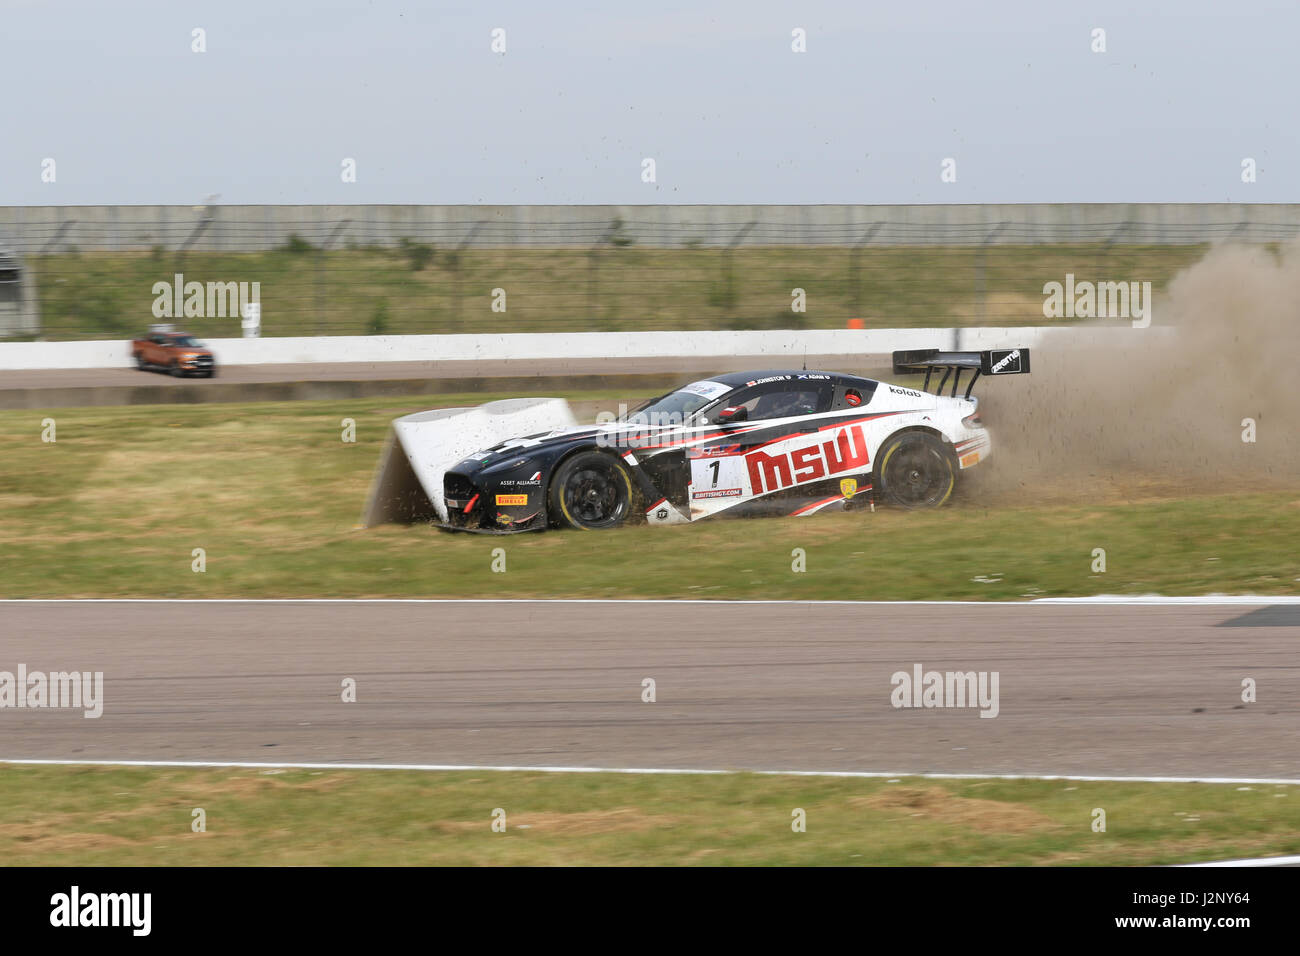 TF Sport car number 1 (Derek Johnston and Jonny Adam) loses control and goes into the gravel for the British GT race at Rockingham Motor Speedway ...